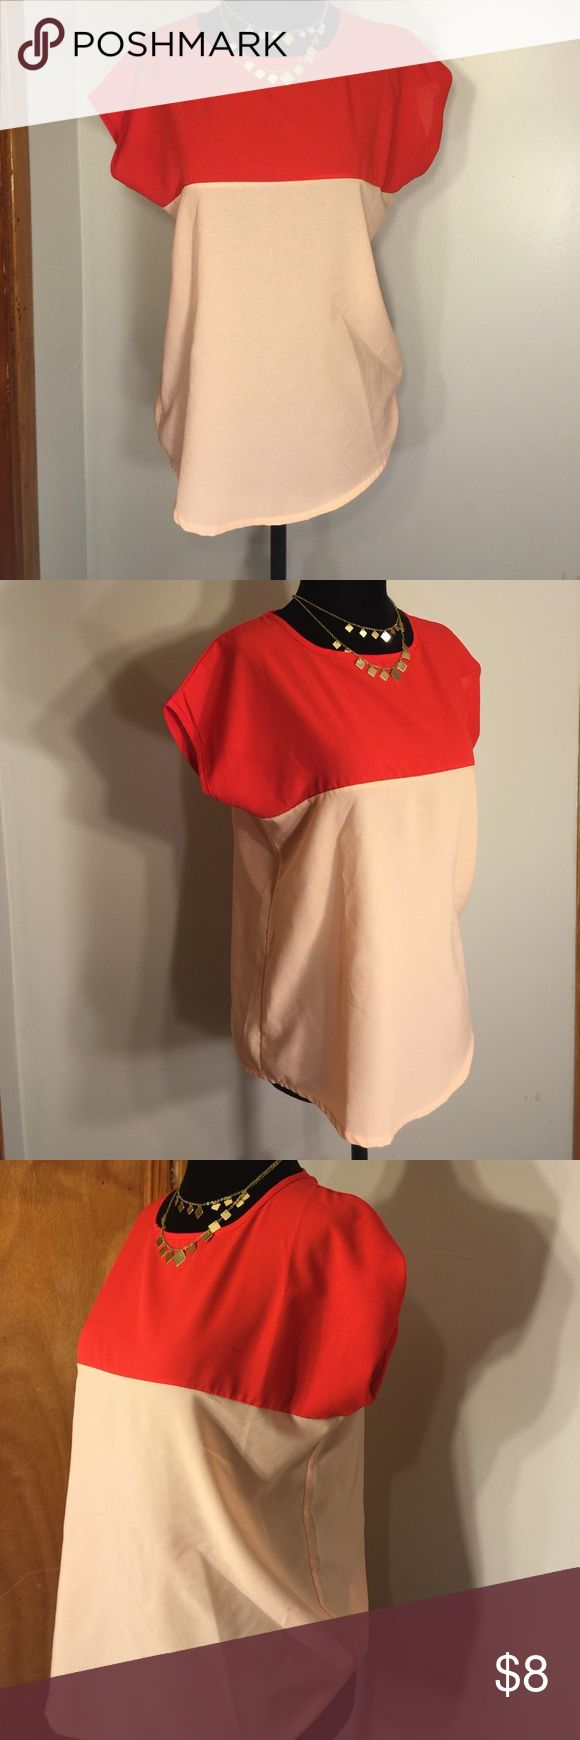 Chiffon Coral Blouse Beautiful lightweight blouse perfect for everyday wear! No tags & I don't remember the brand Tops Blouses